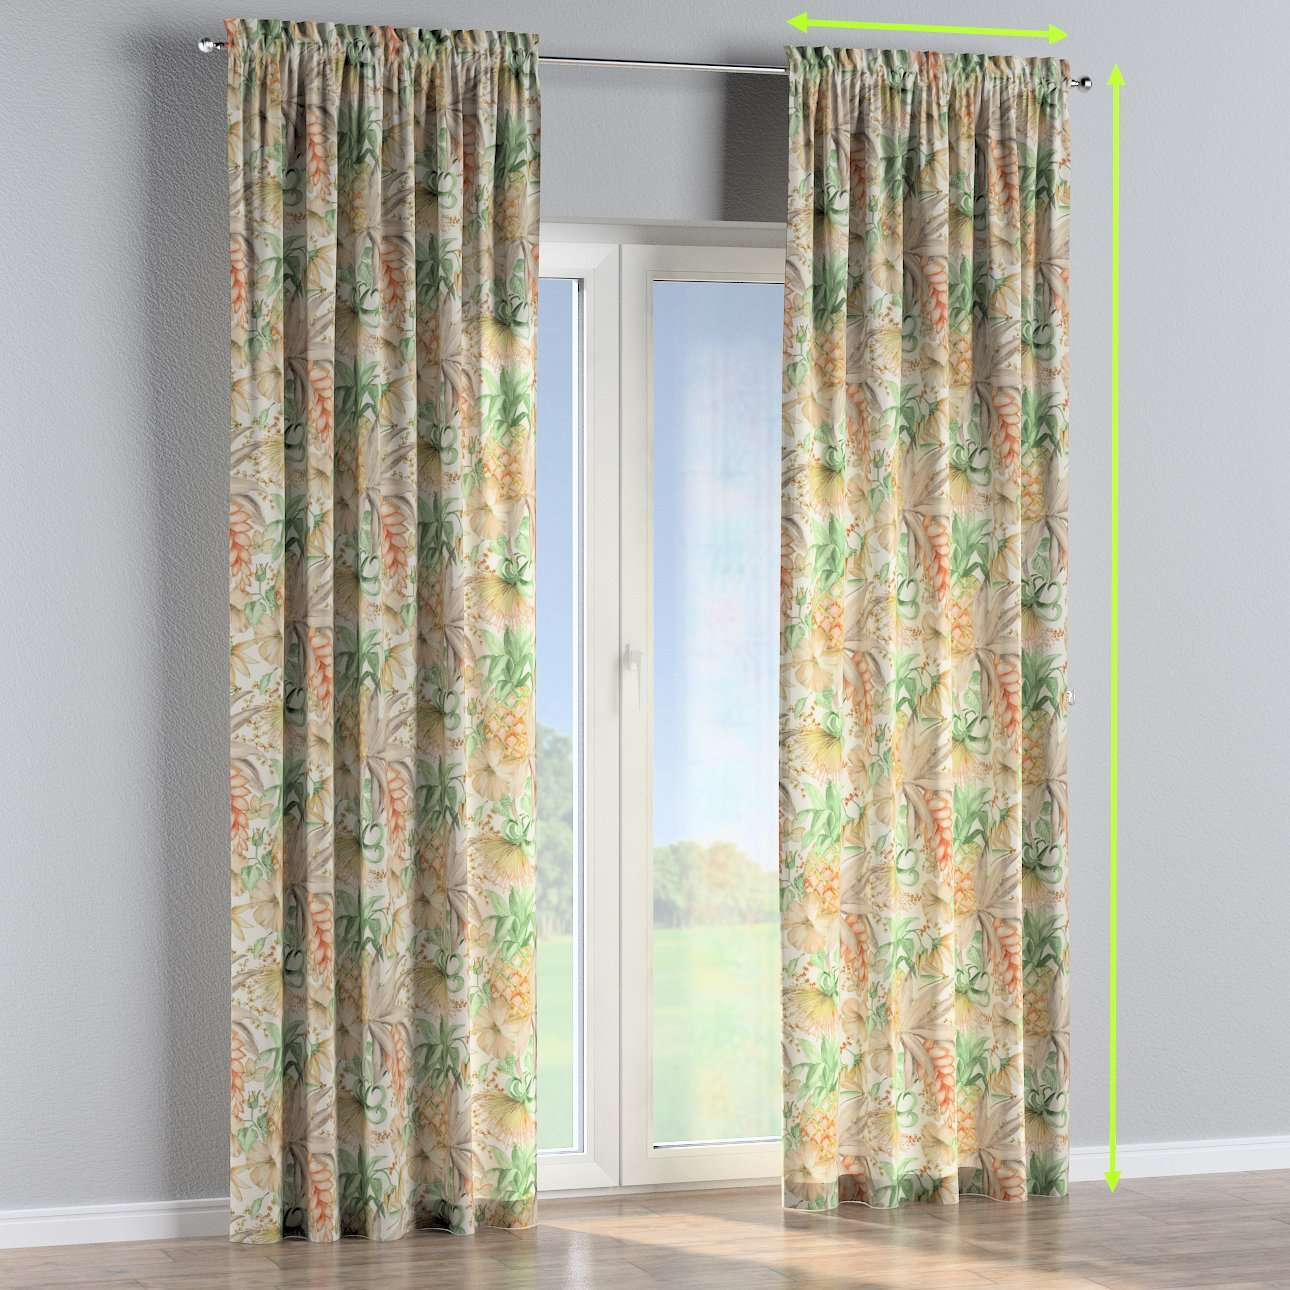 Slot and frill lined curtains in collection Urban Jungle, fabric: 141-61